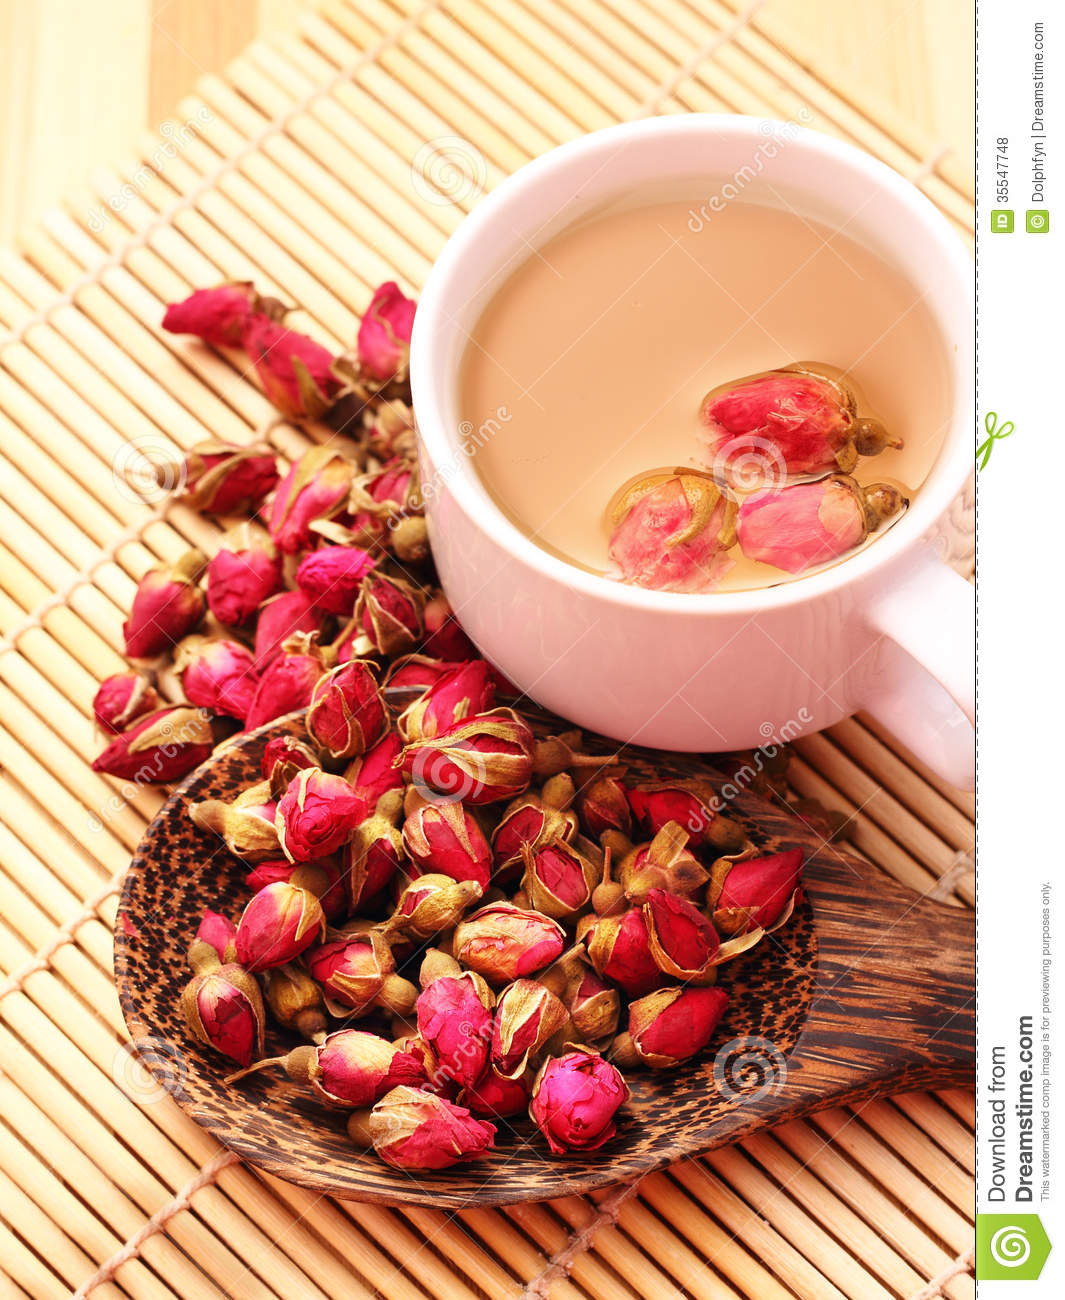 Dried roses, wooden scoop and a cup of rose tea on bamboo mat.